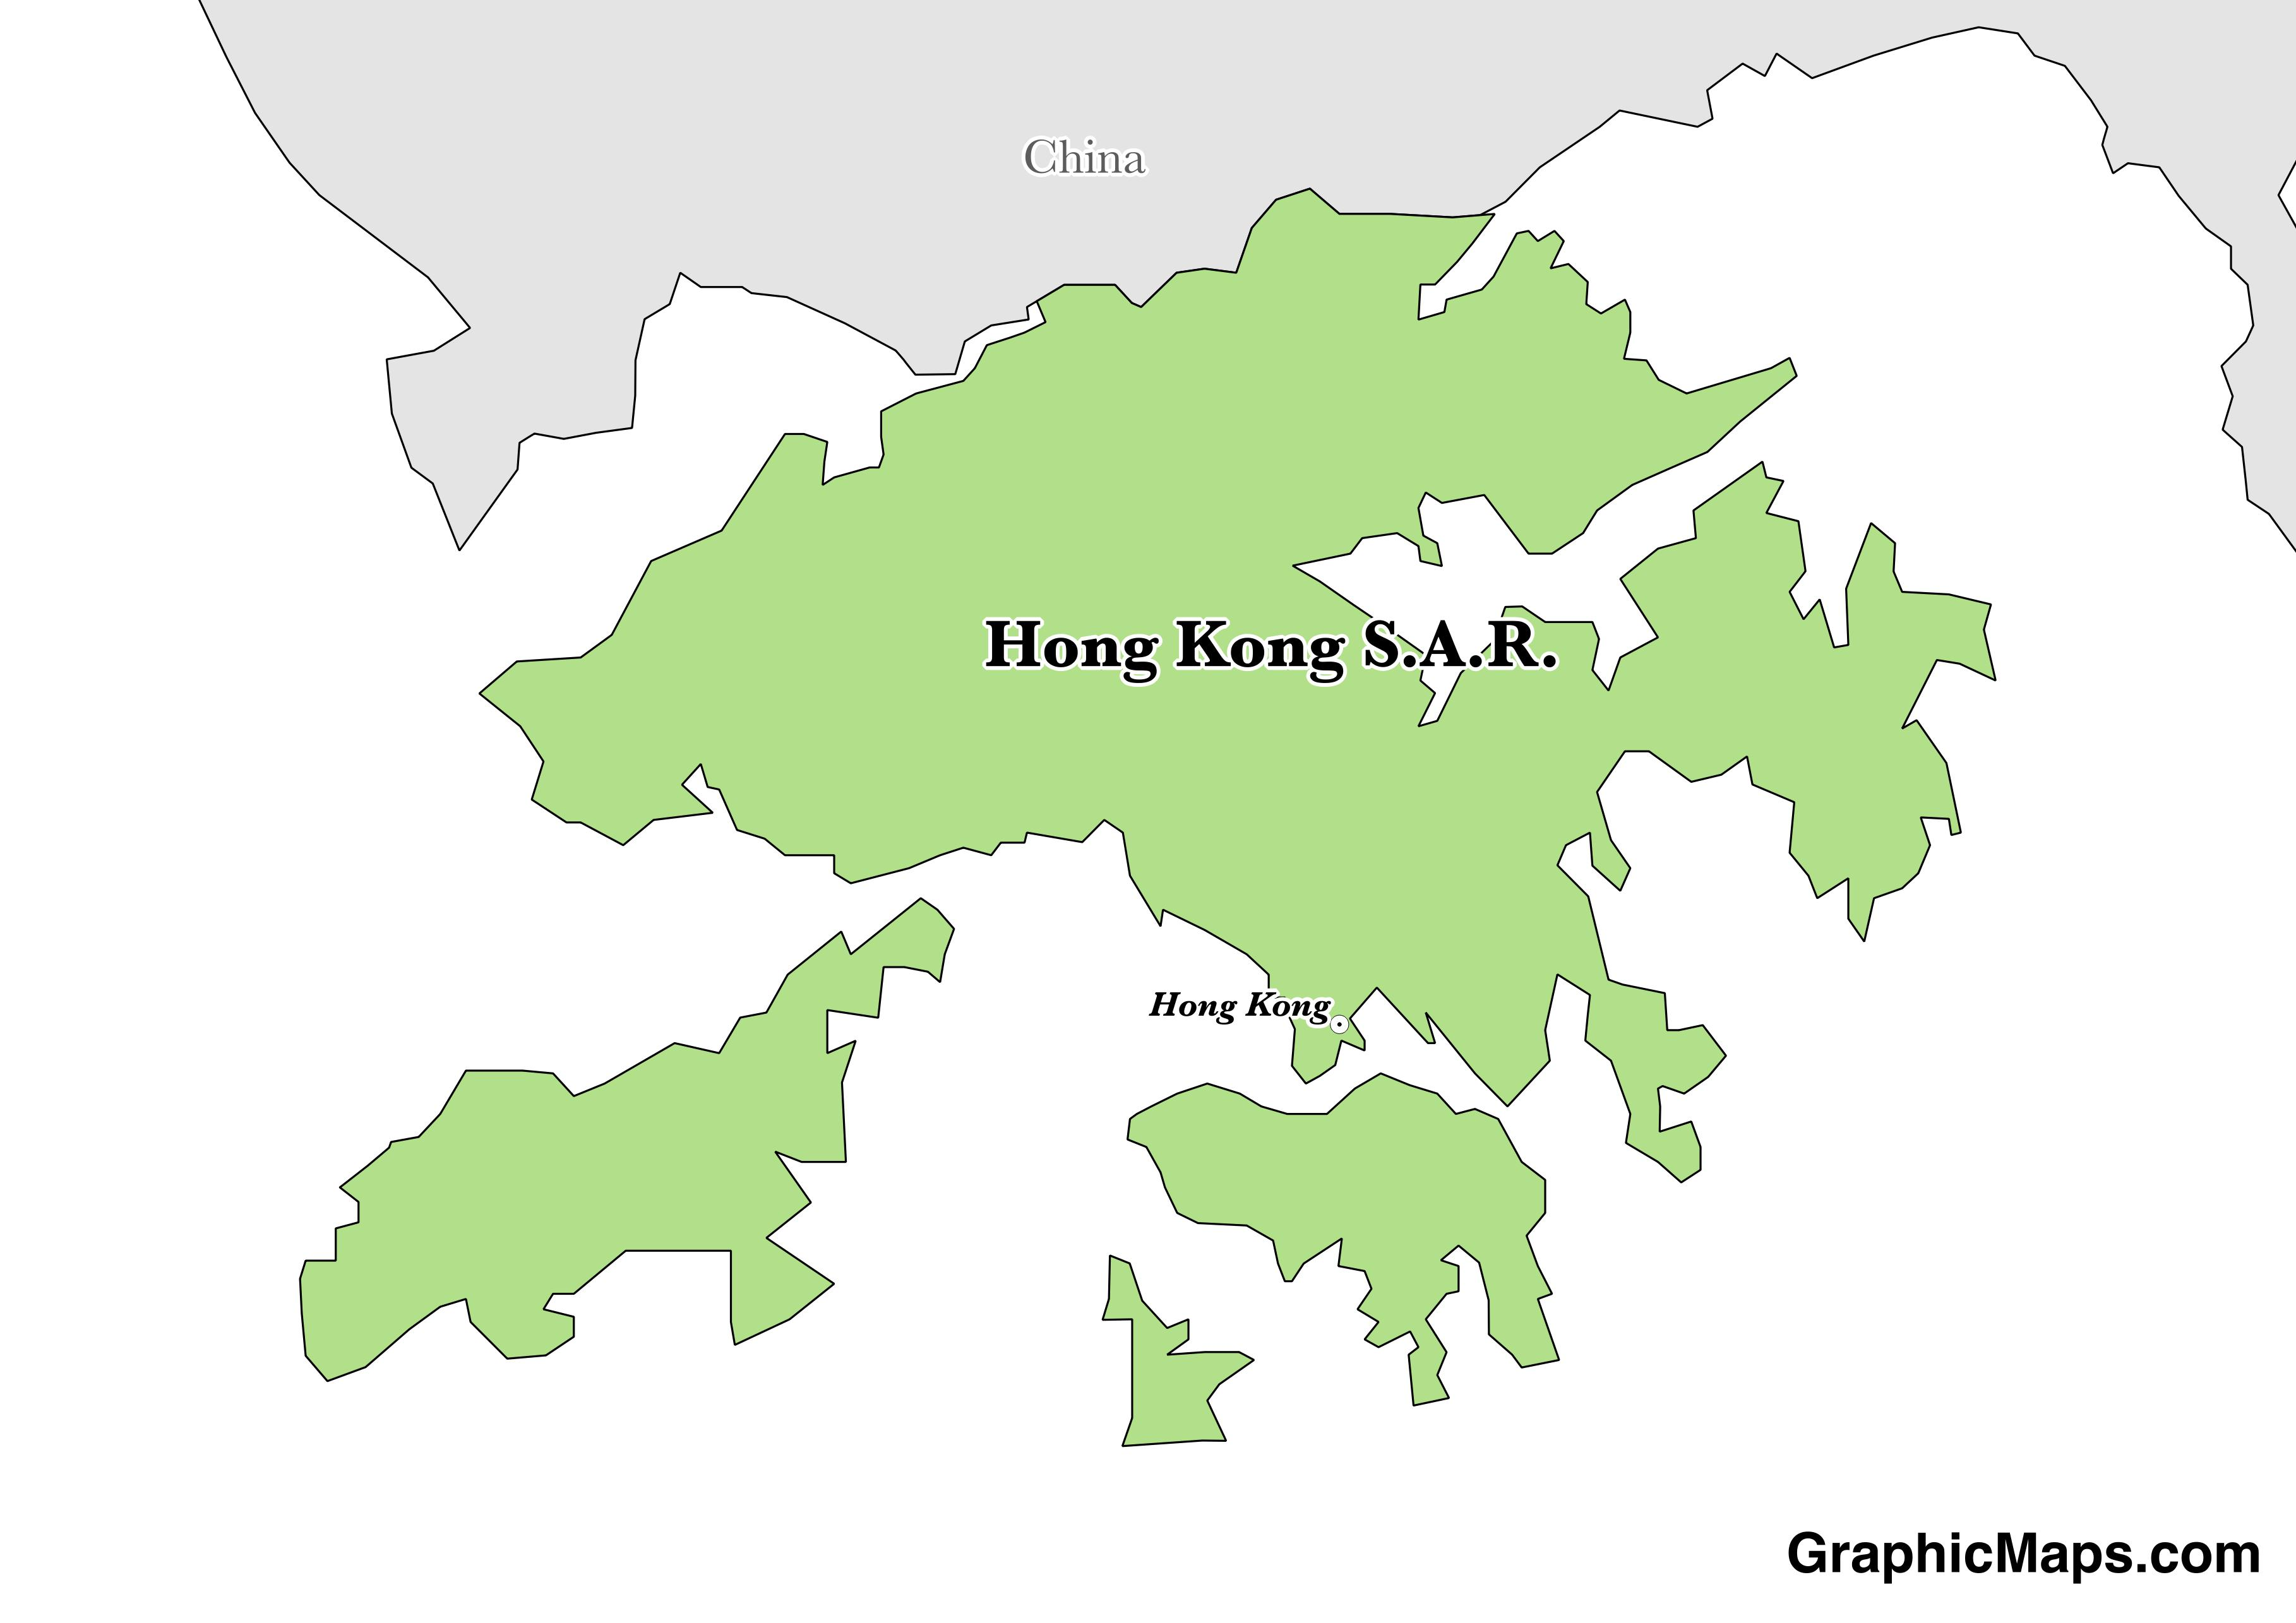 Map showing the location of Hong Kong